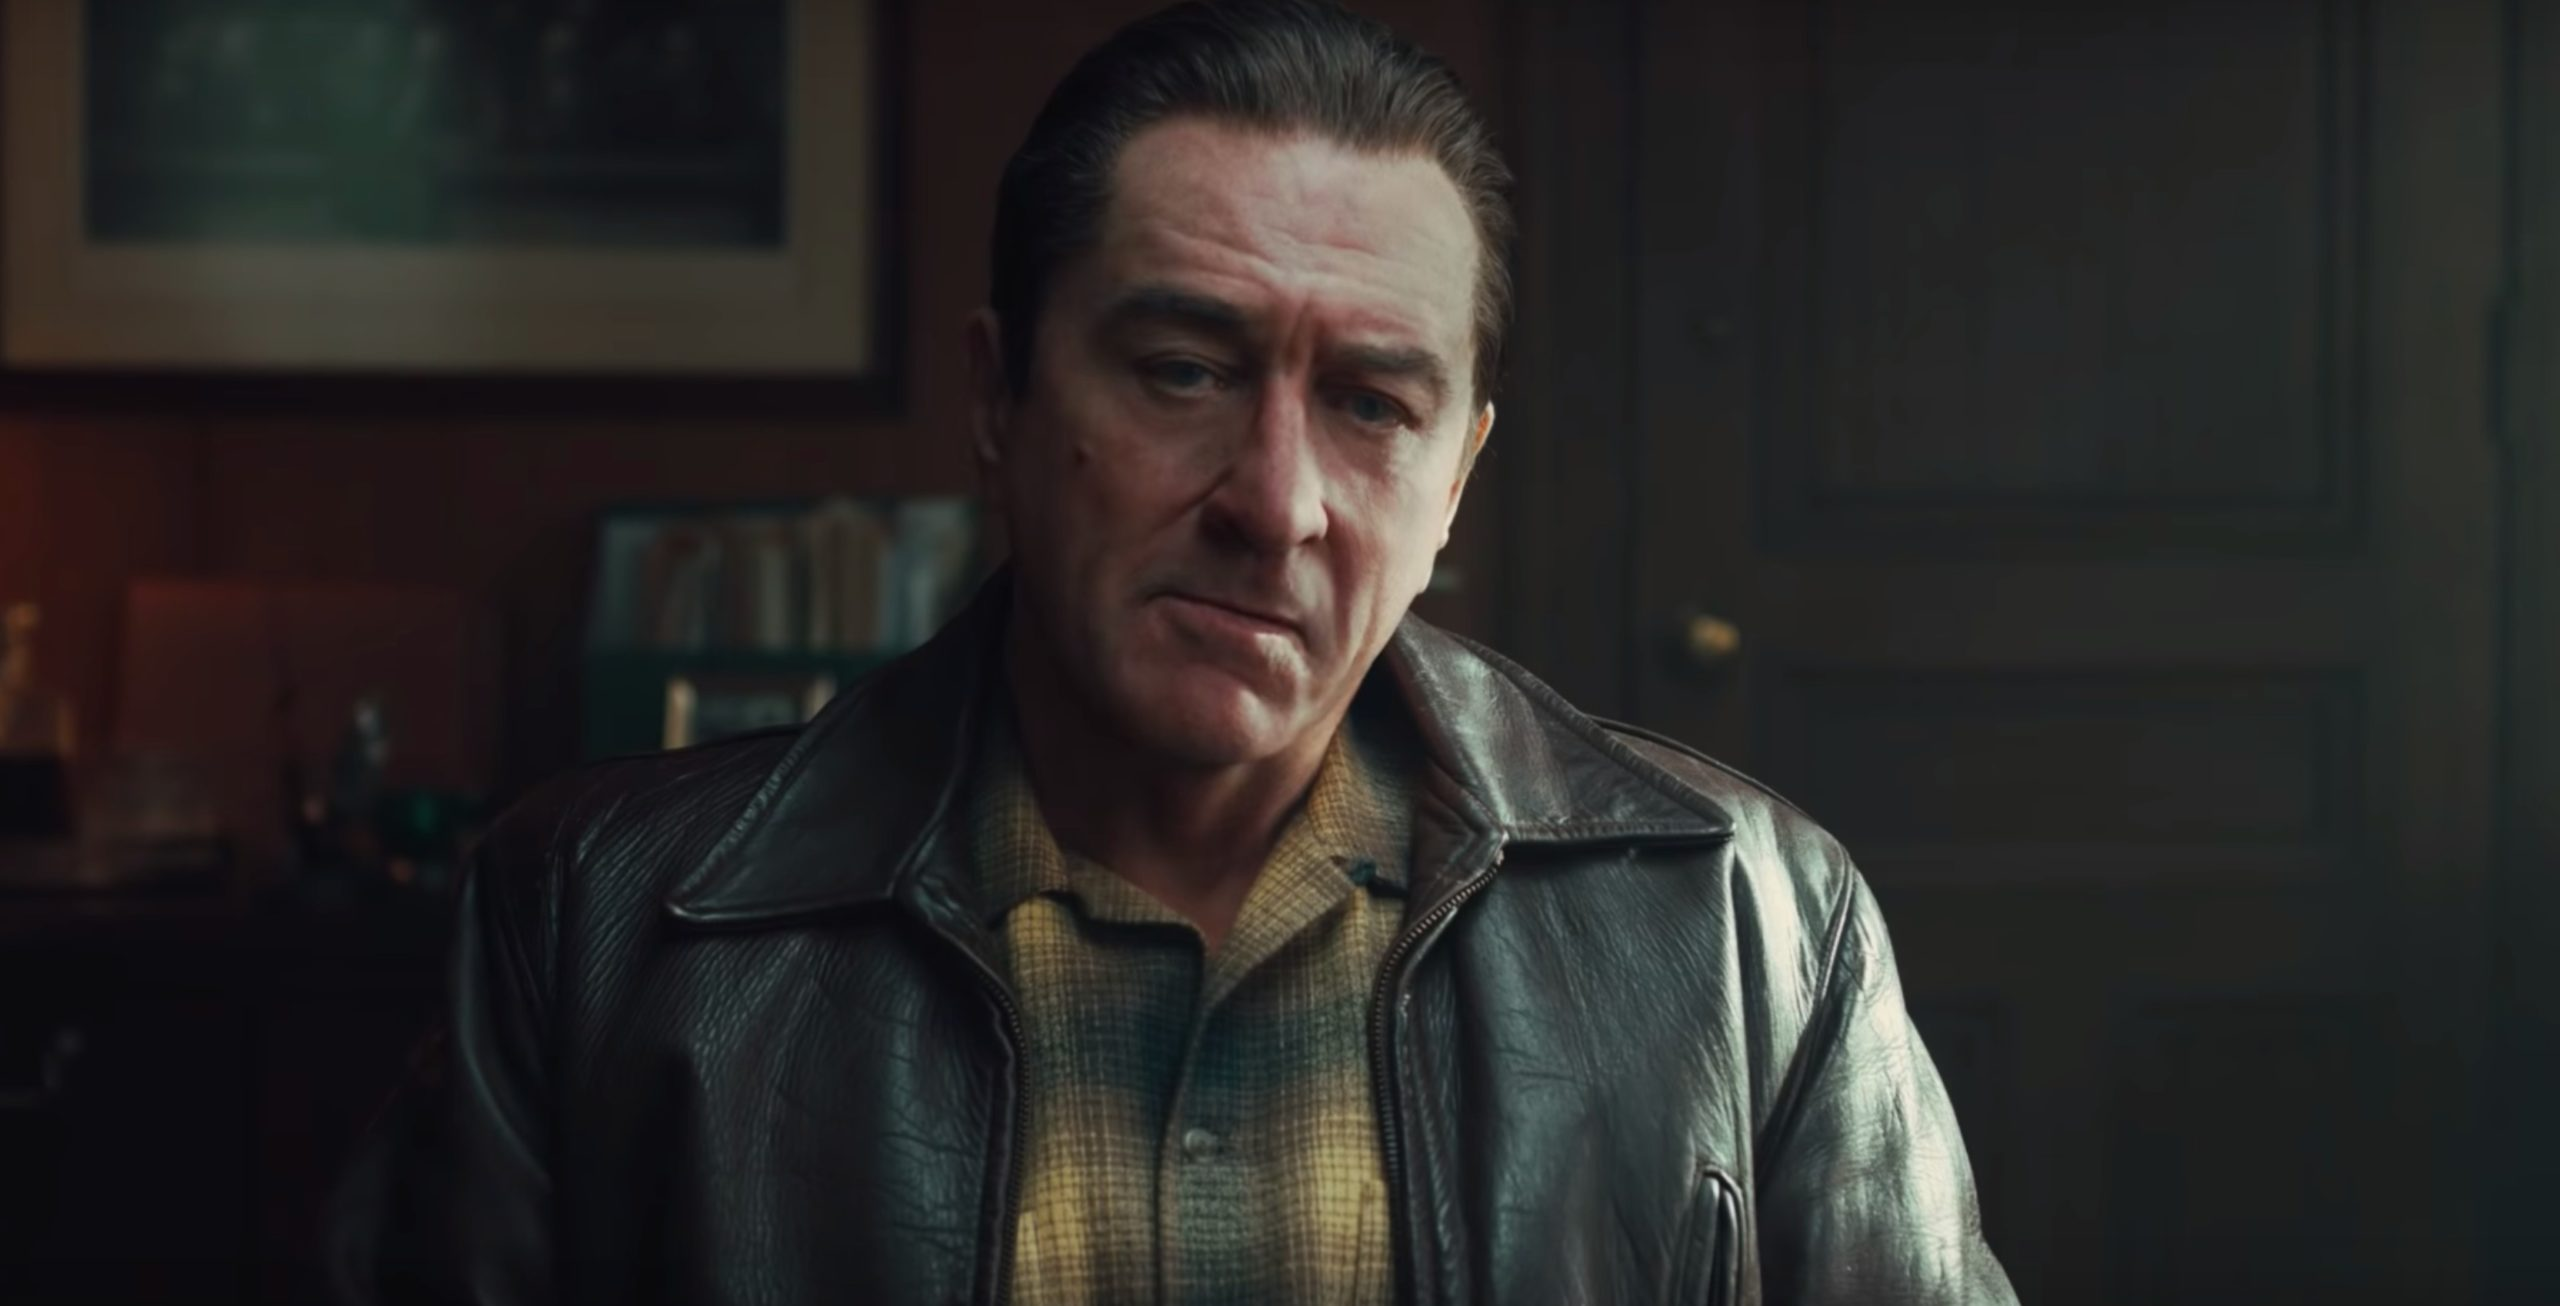 Netflix's The Irishman watched by 17.1 million U.S. viewers in first 5 days